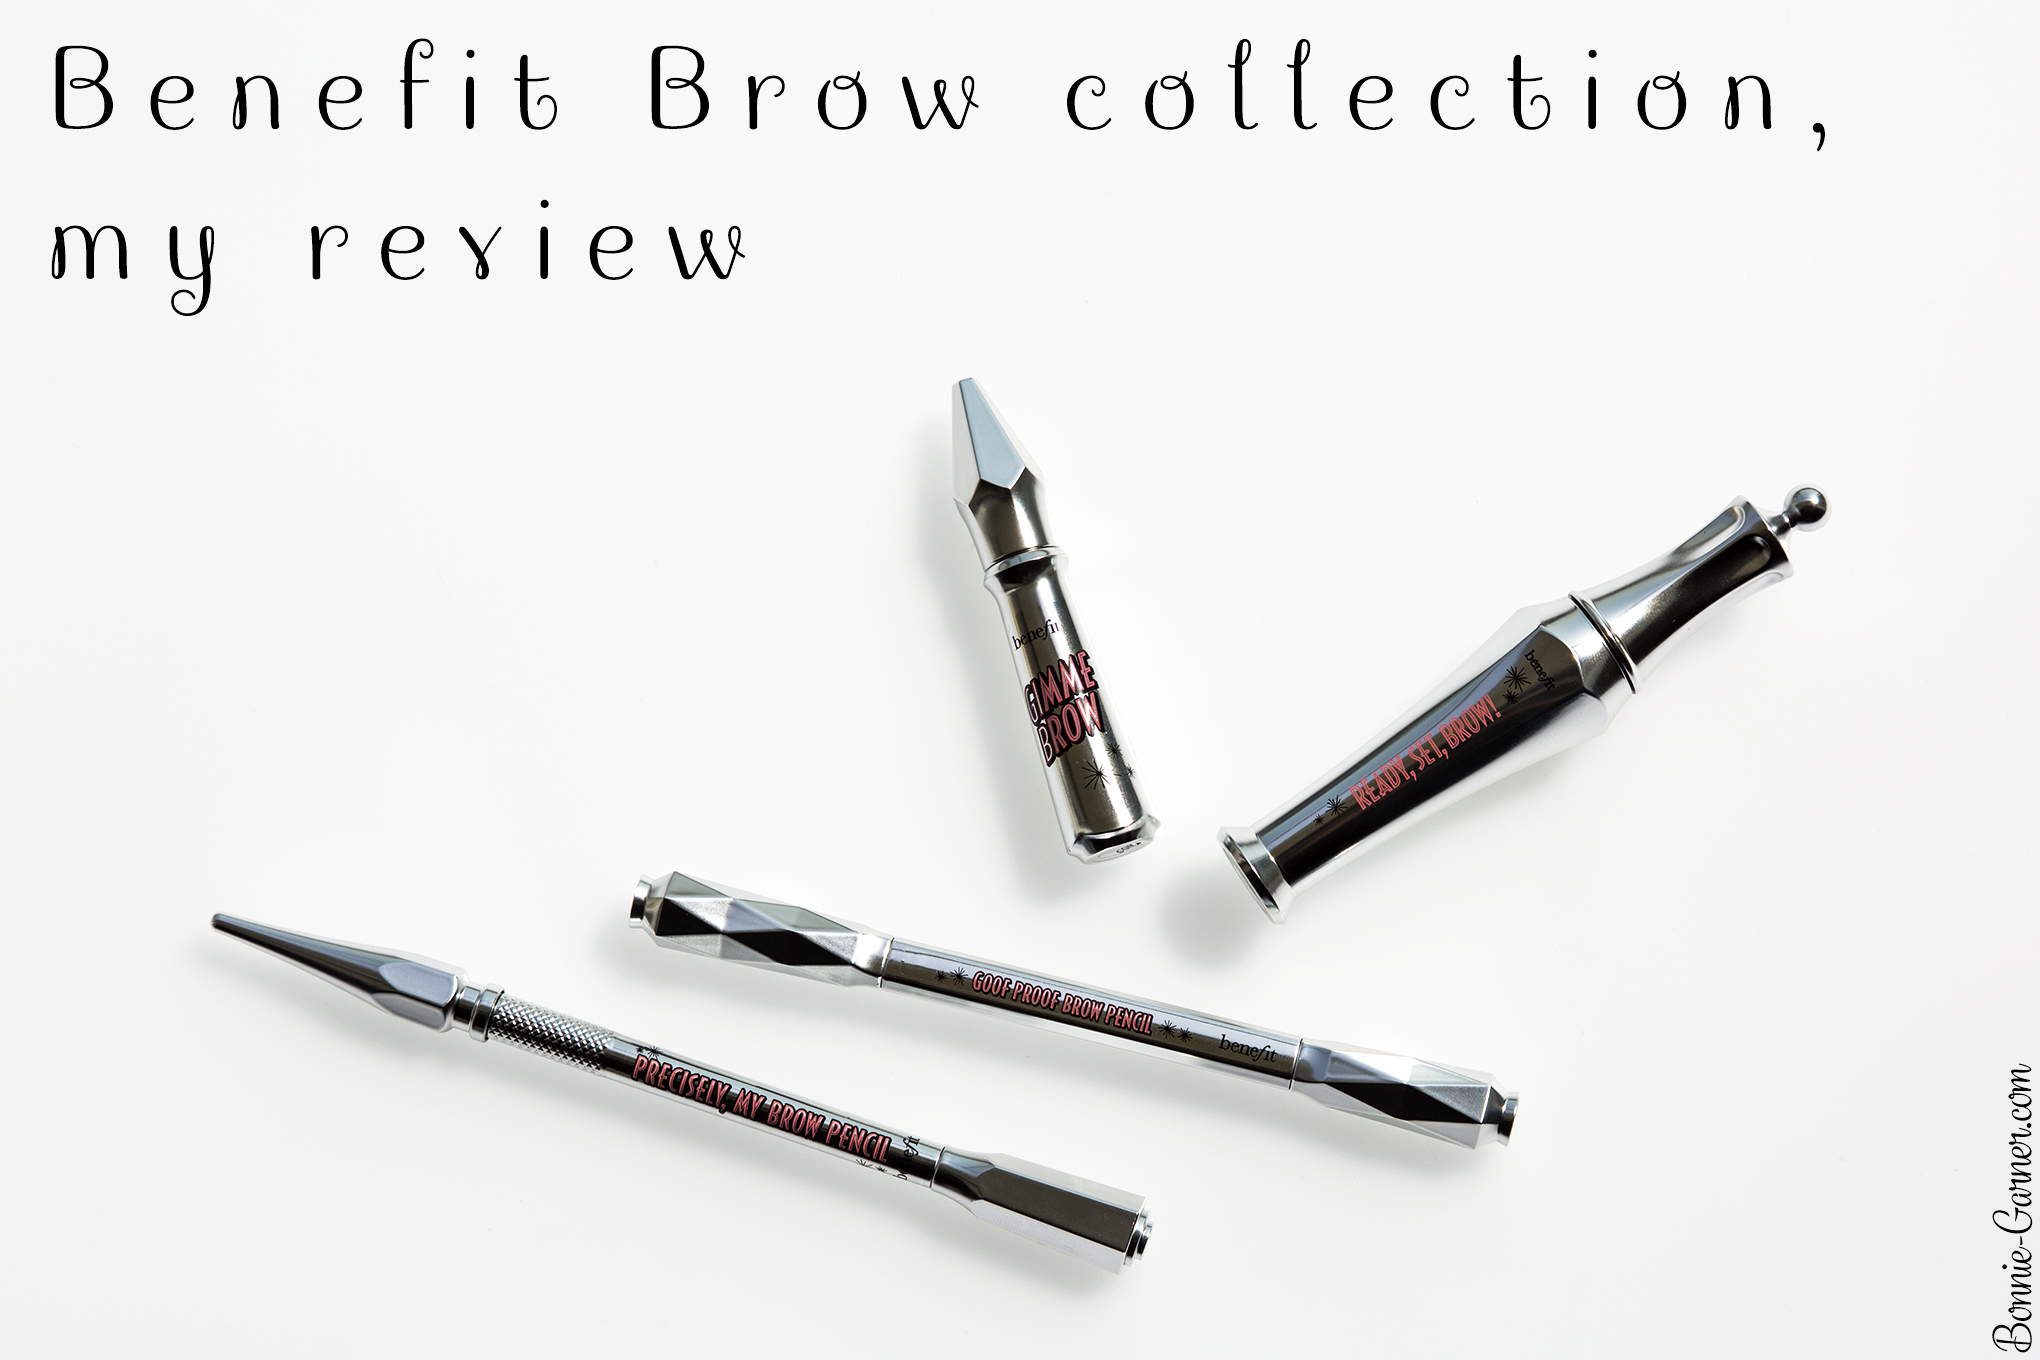 Benefit brow collection, my review